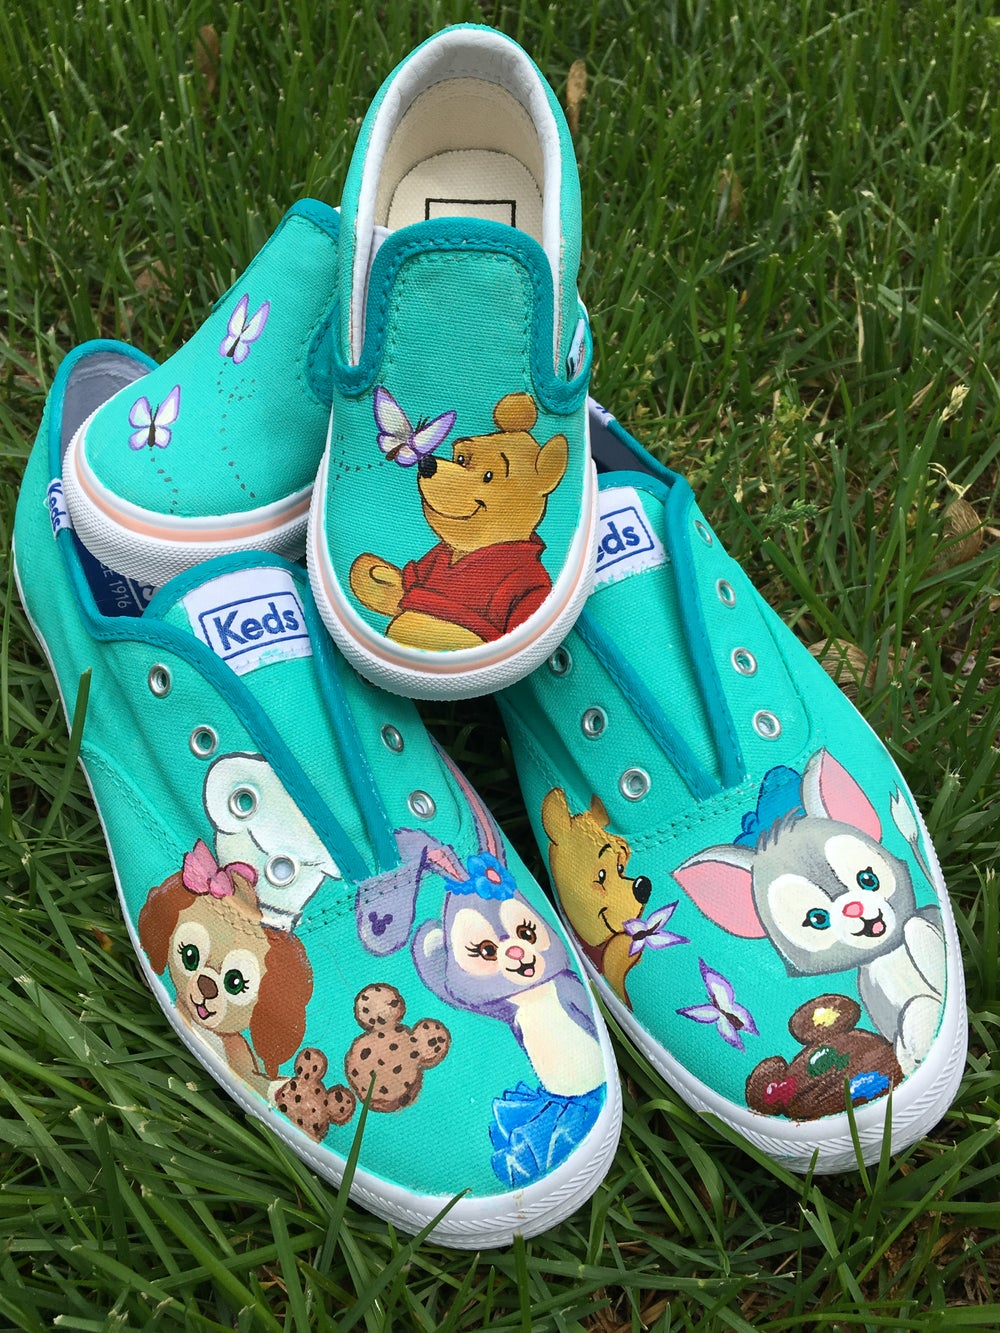 Custom Painted Shoes Vans, Keds or Converse (Toe area only)